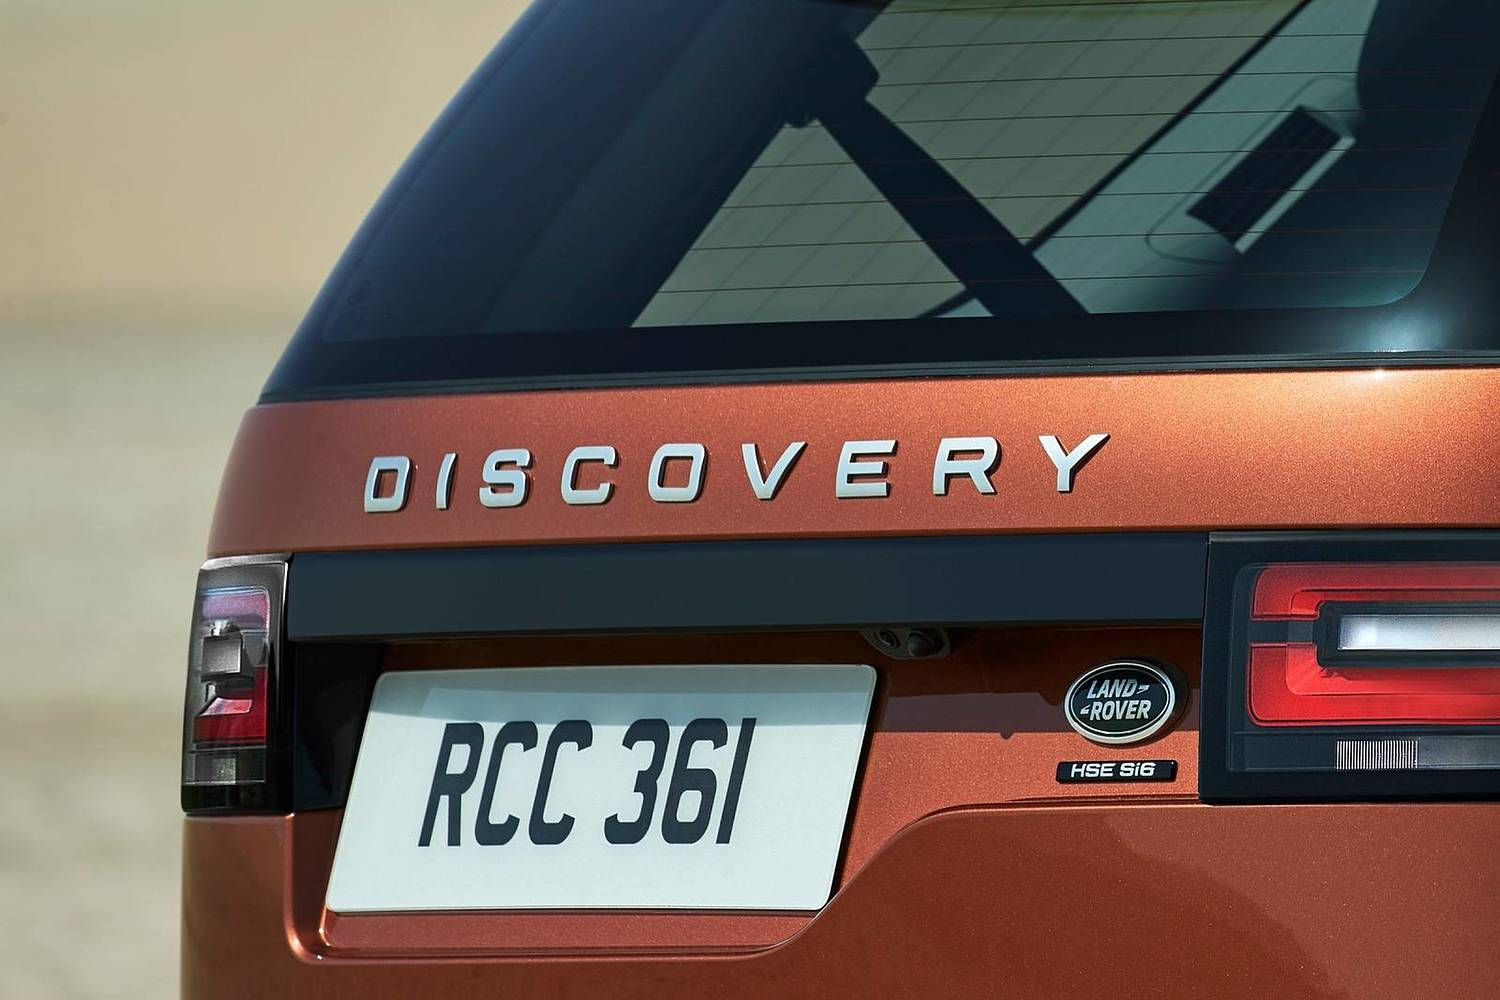 Land Rover Discovery HSE Td6 4dr SUV Rear Badge (2017 model year shown)